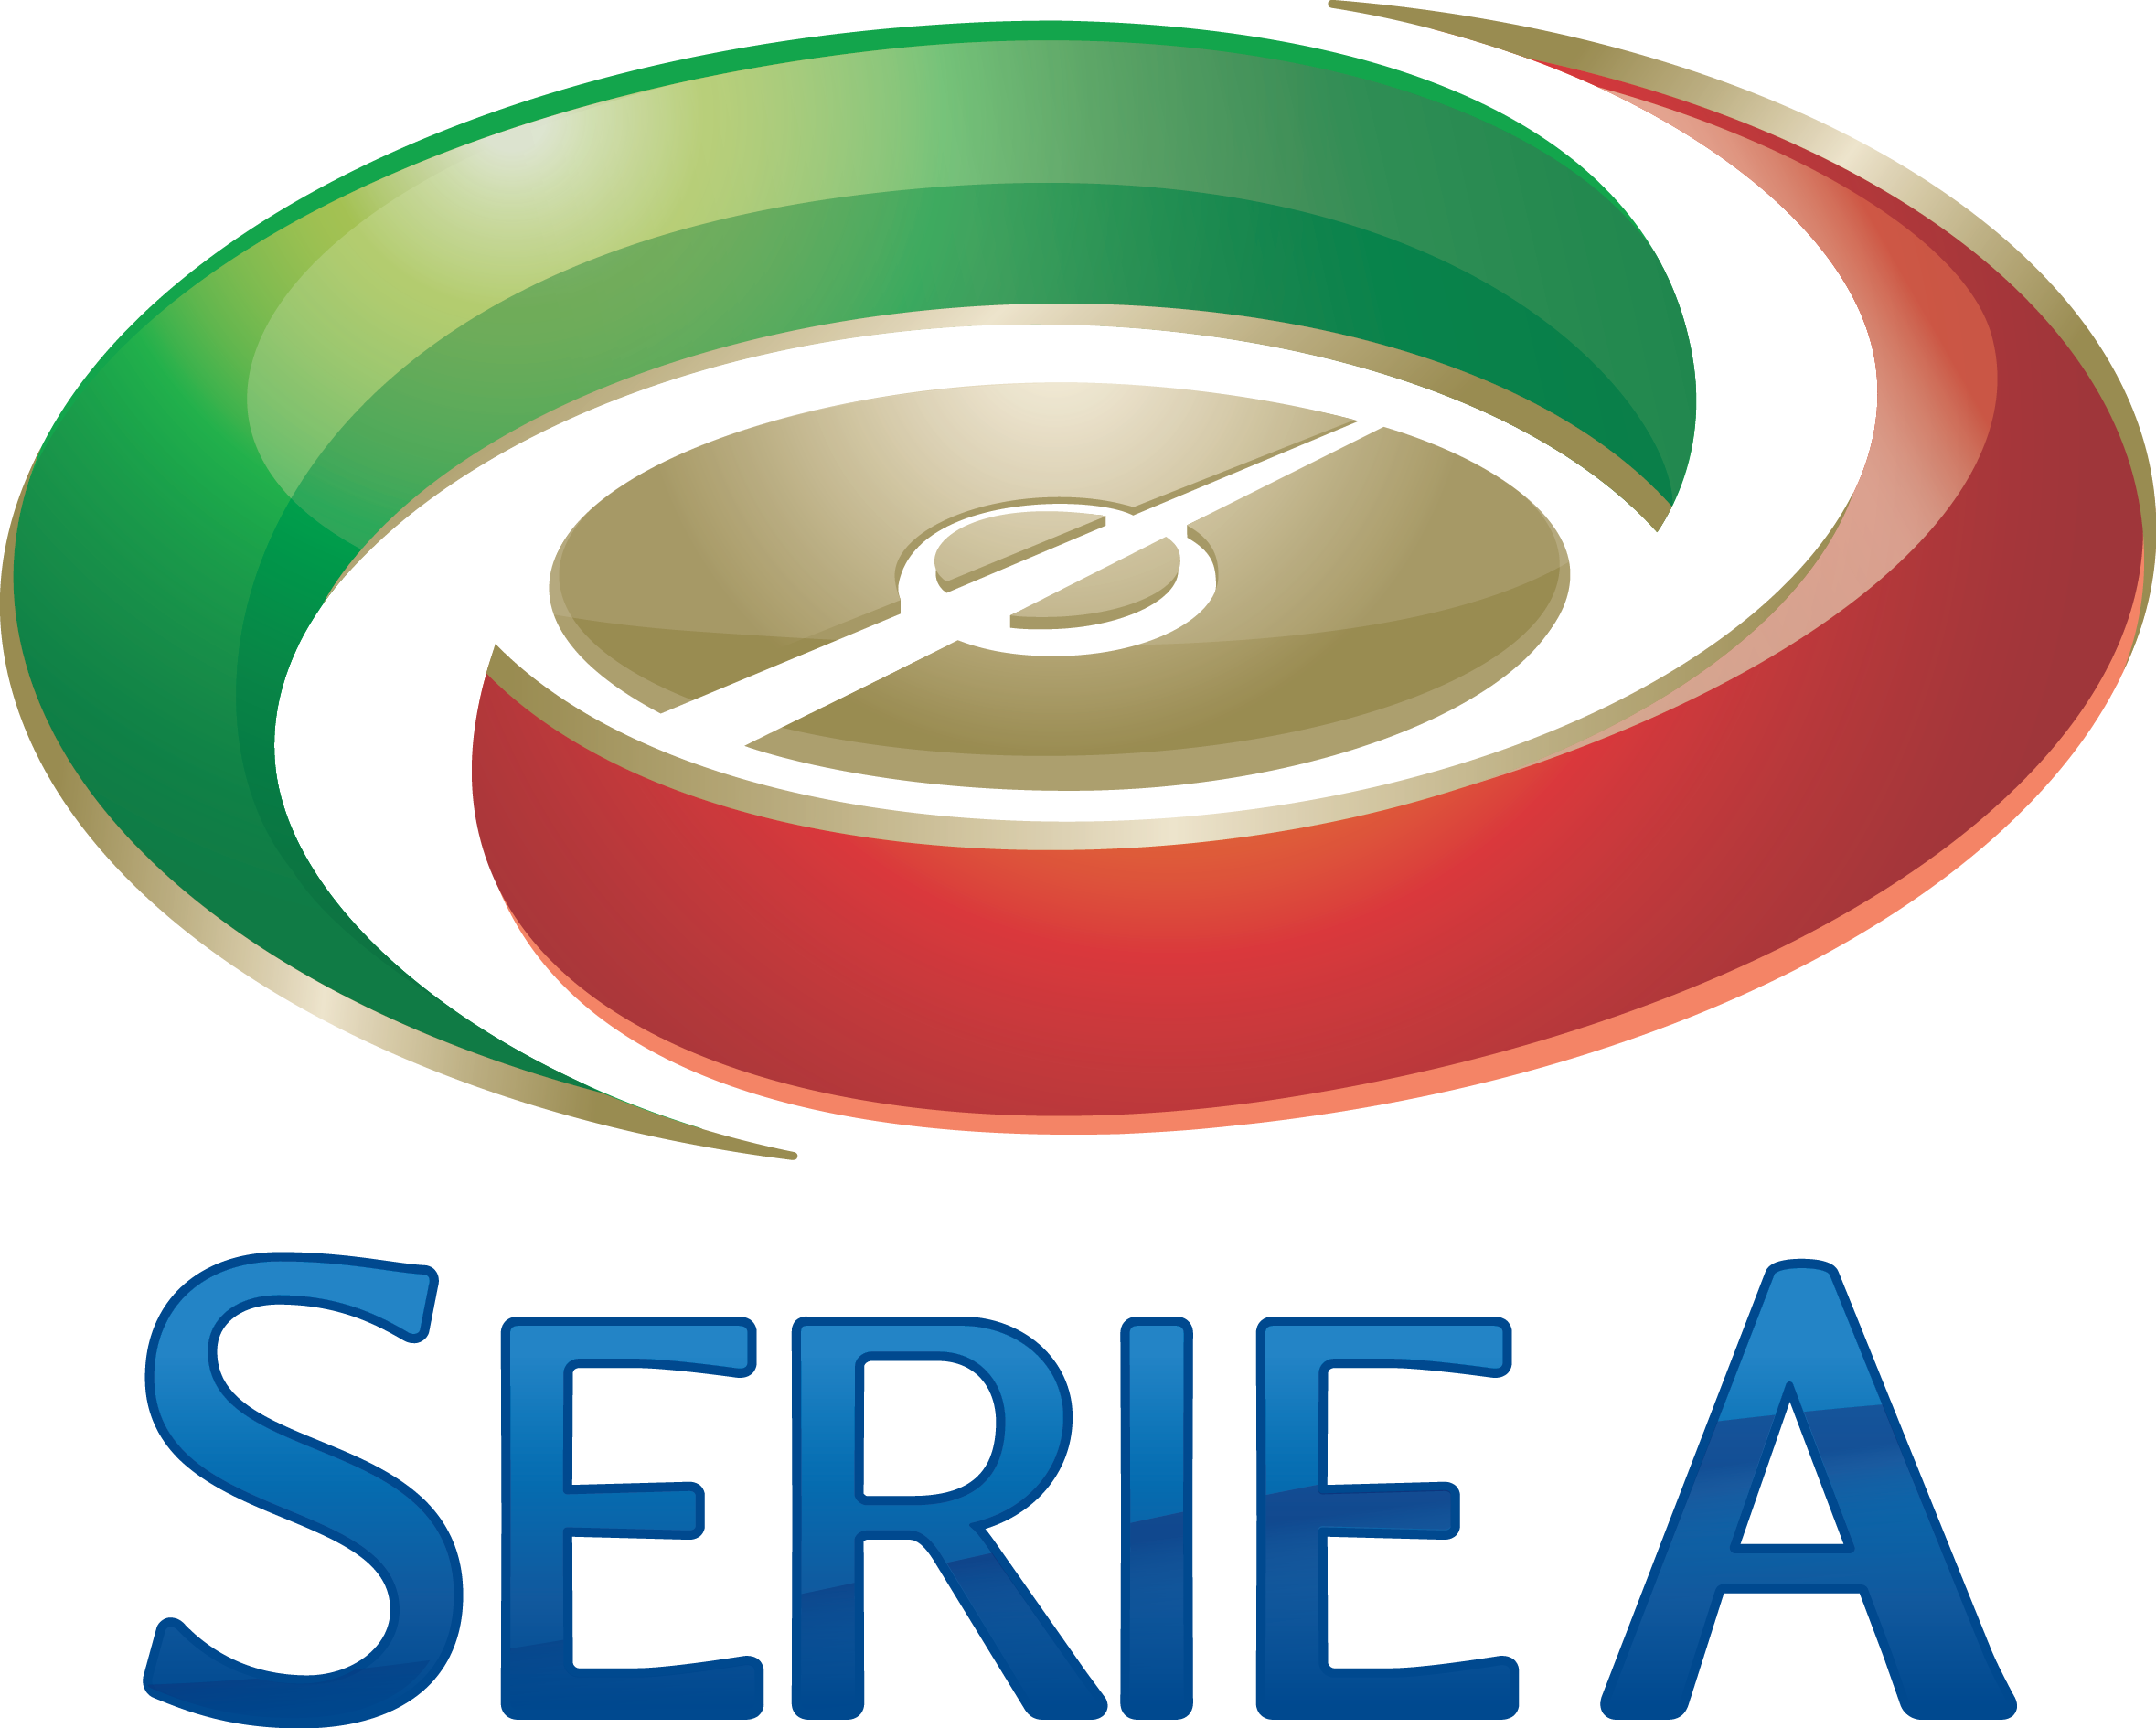 Fiorentina vs Atalanta 2-0 All goals and highlights 04/10/2015